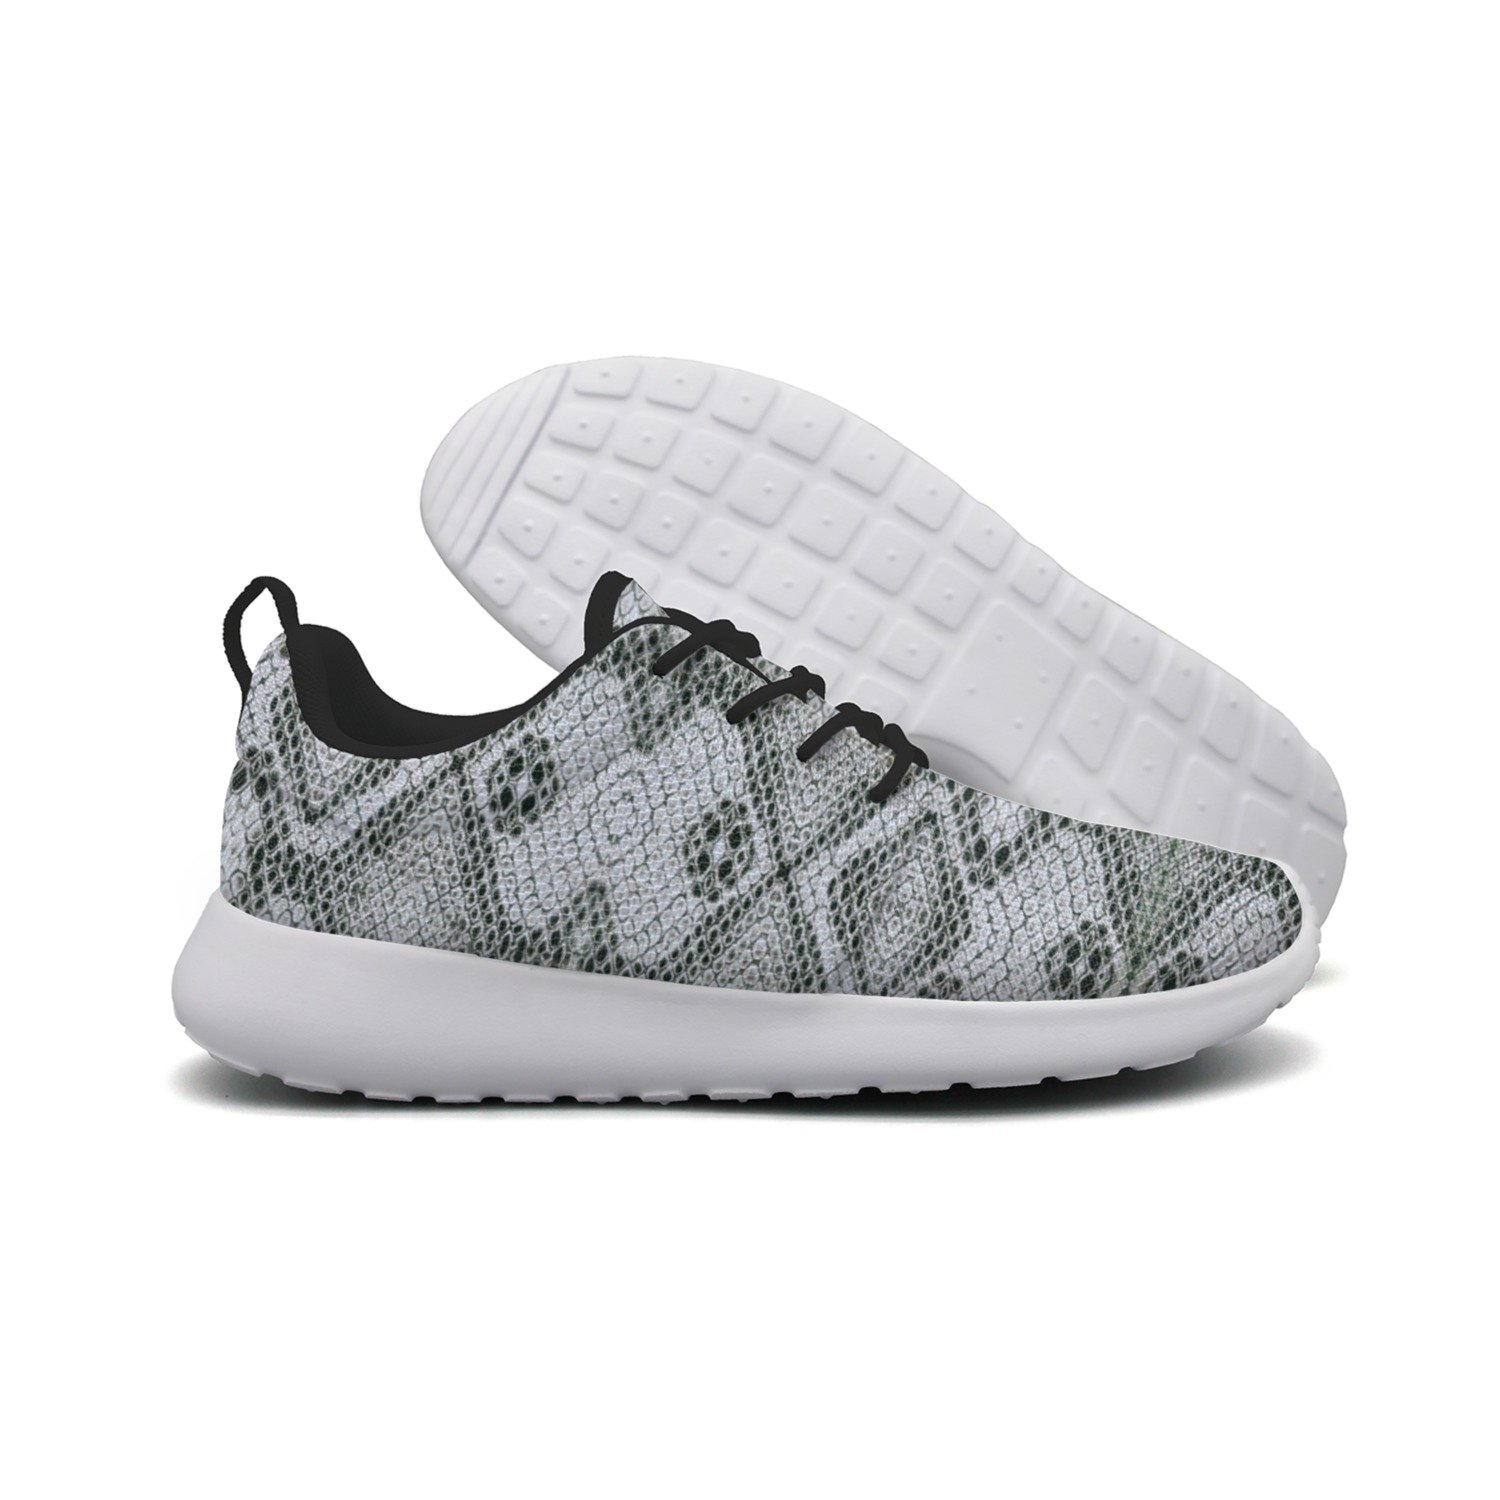 FUFGT White Snake Skin Women's Net Design Running Shoes Hunting Colorful